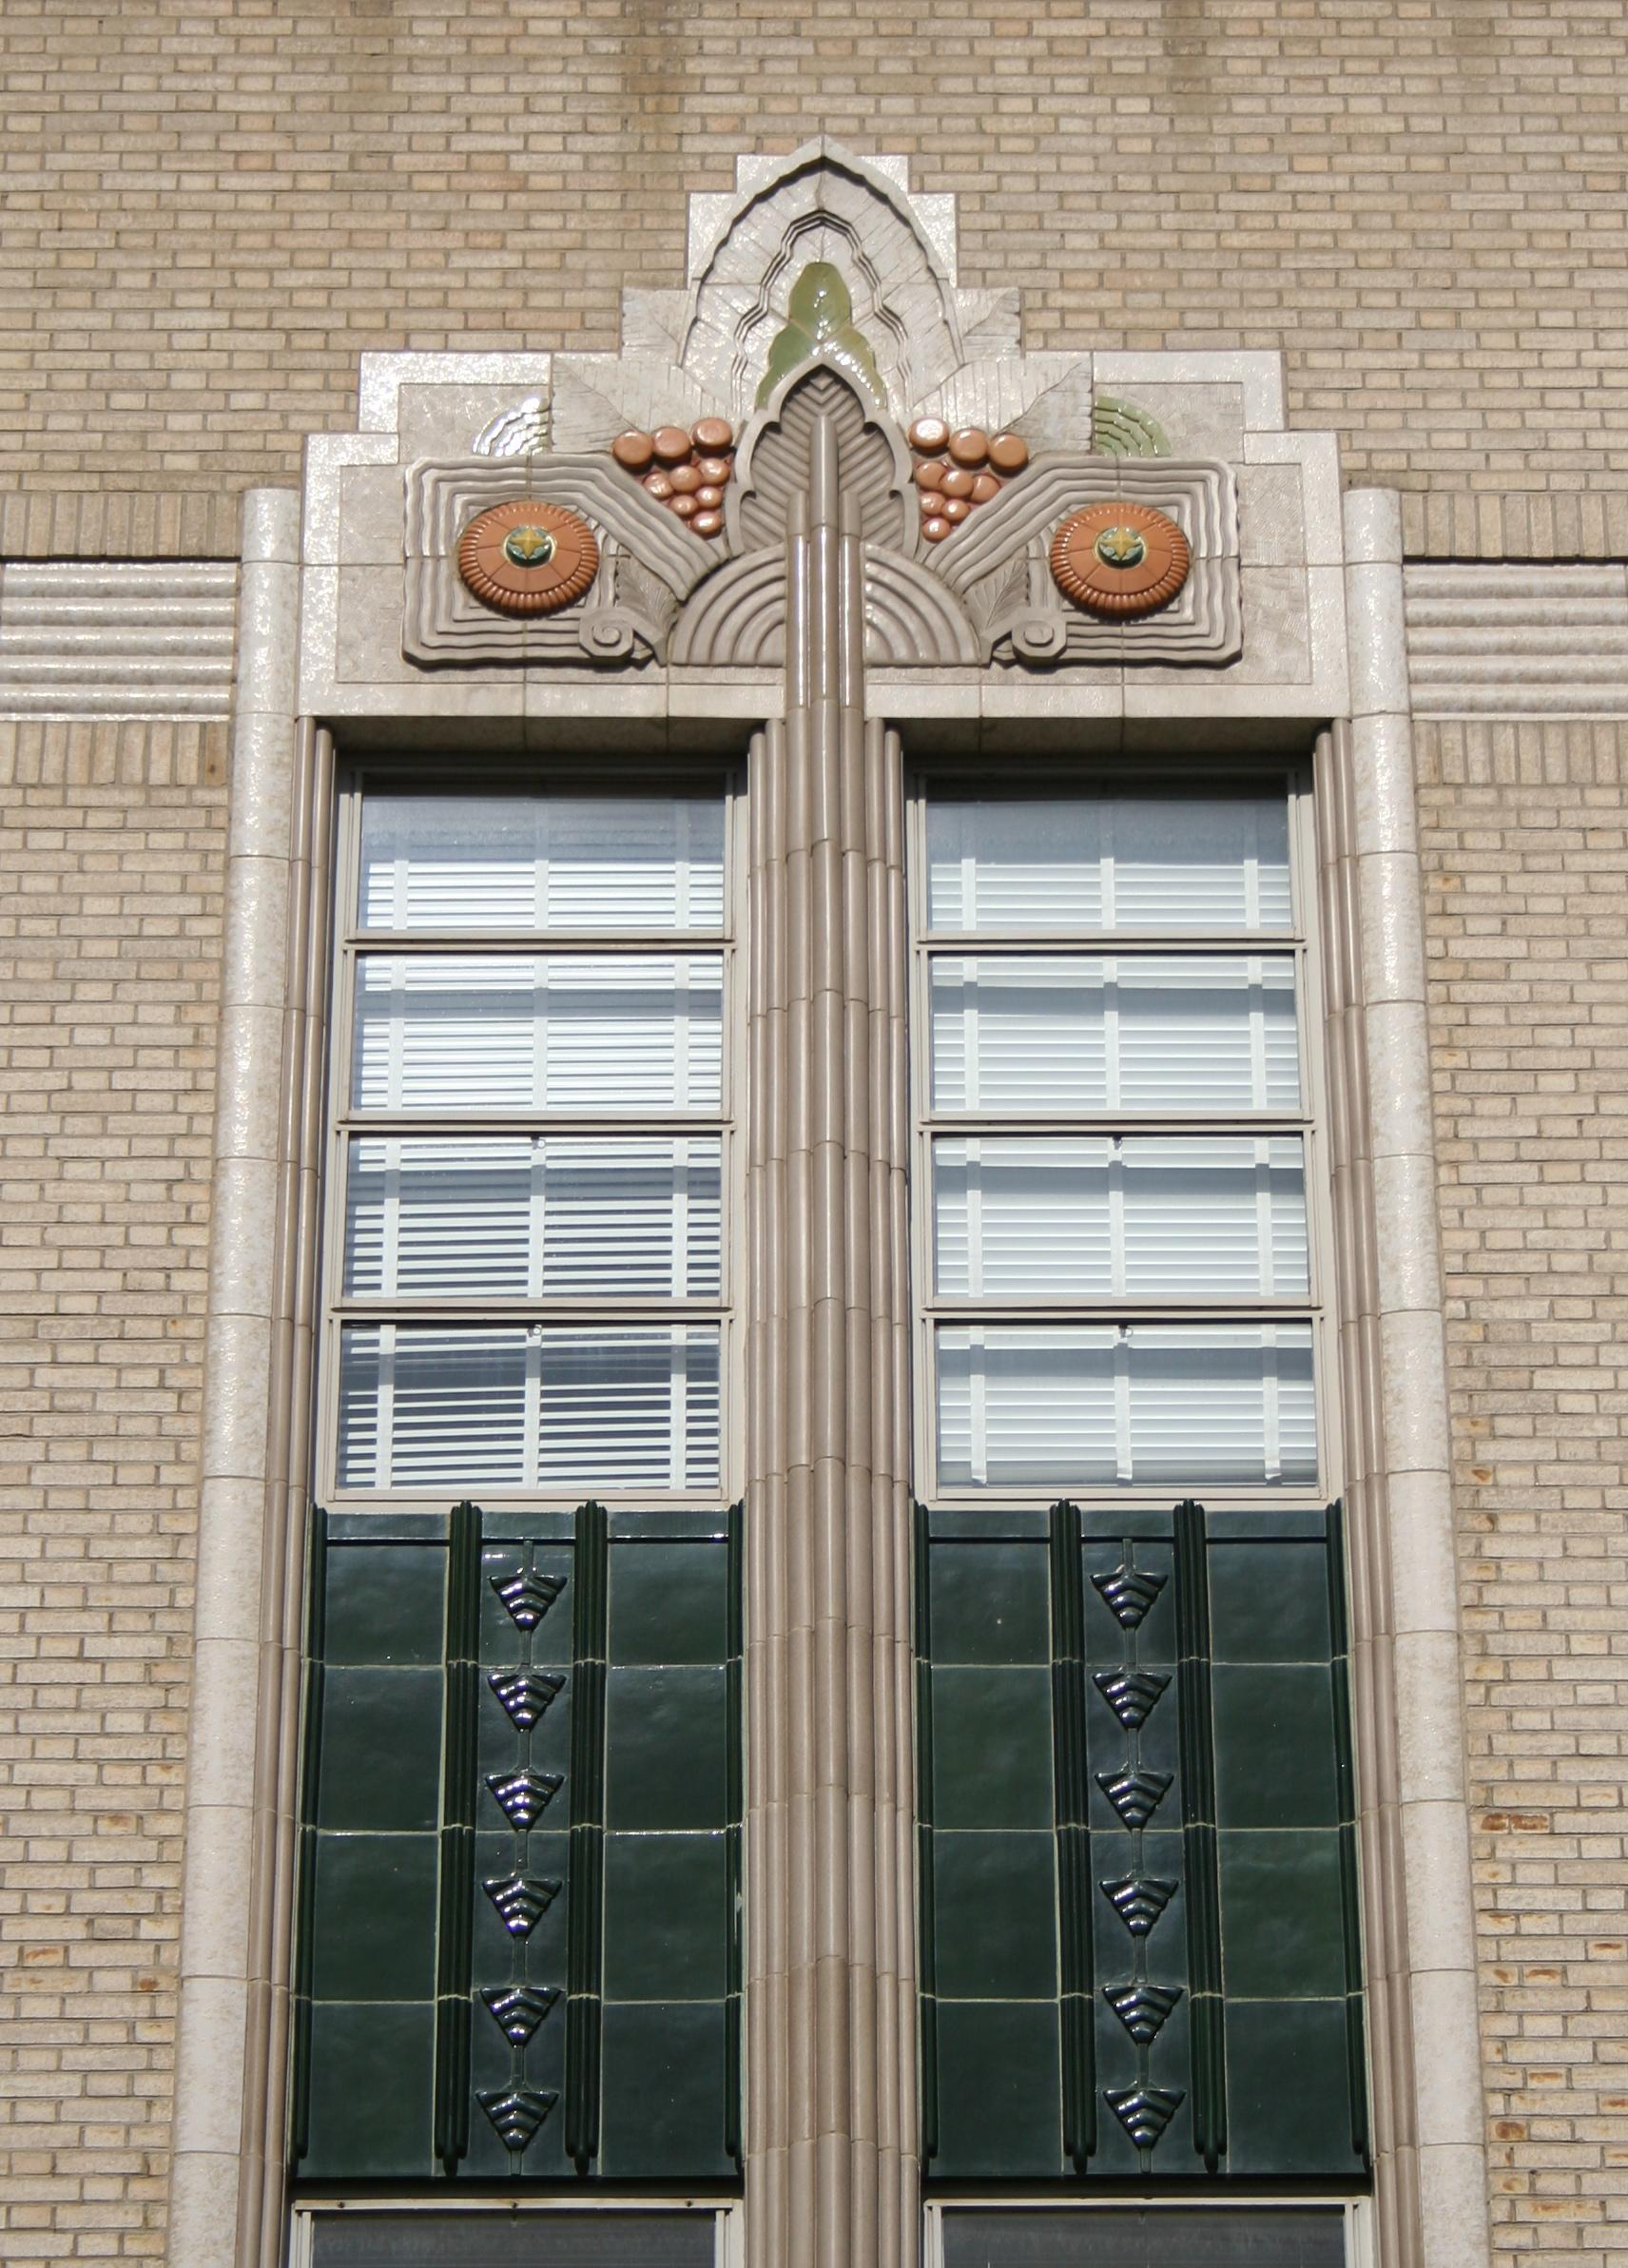 Photos art deco architecture in the san joaquin valley for Art deco architectural details